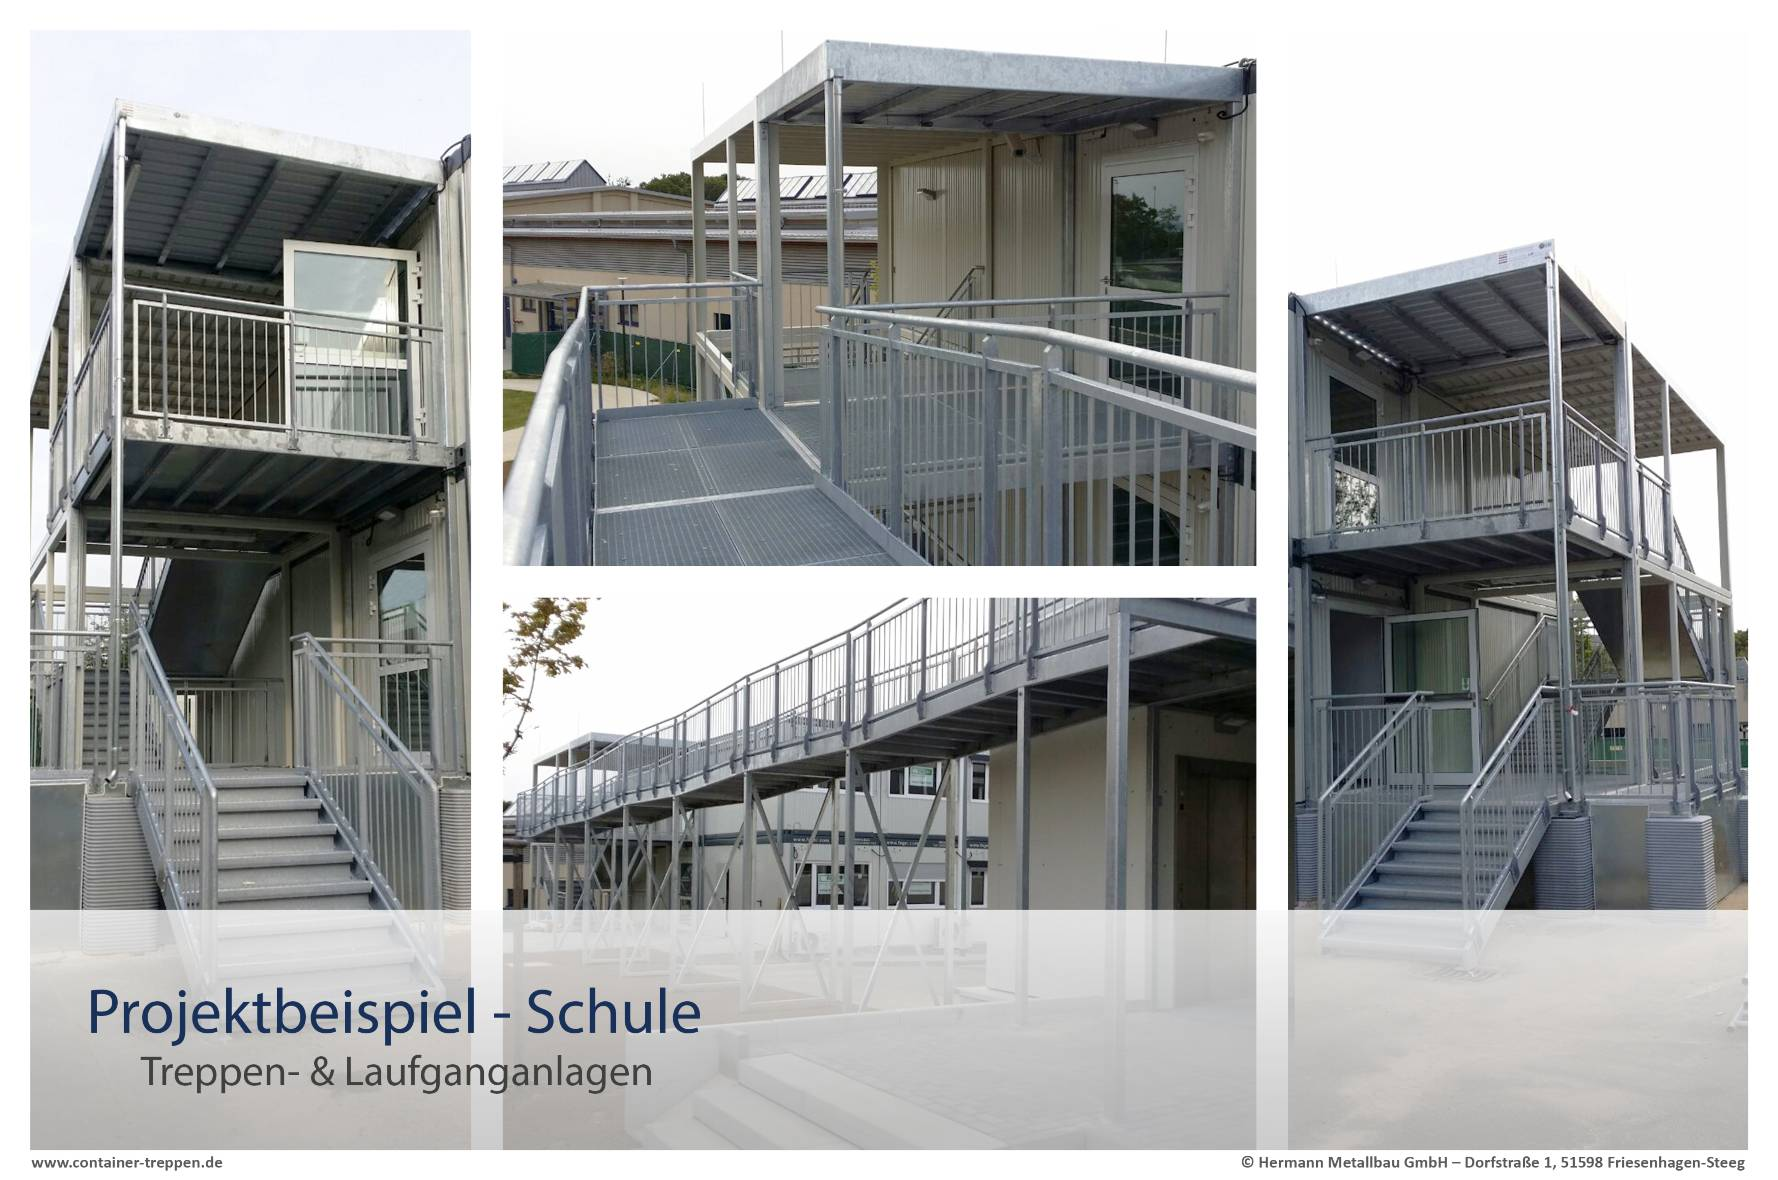 Treppe_Container_Schule_06